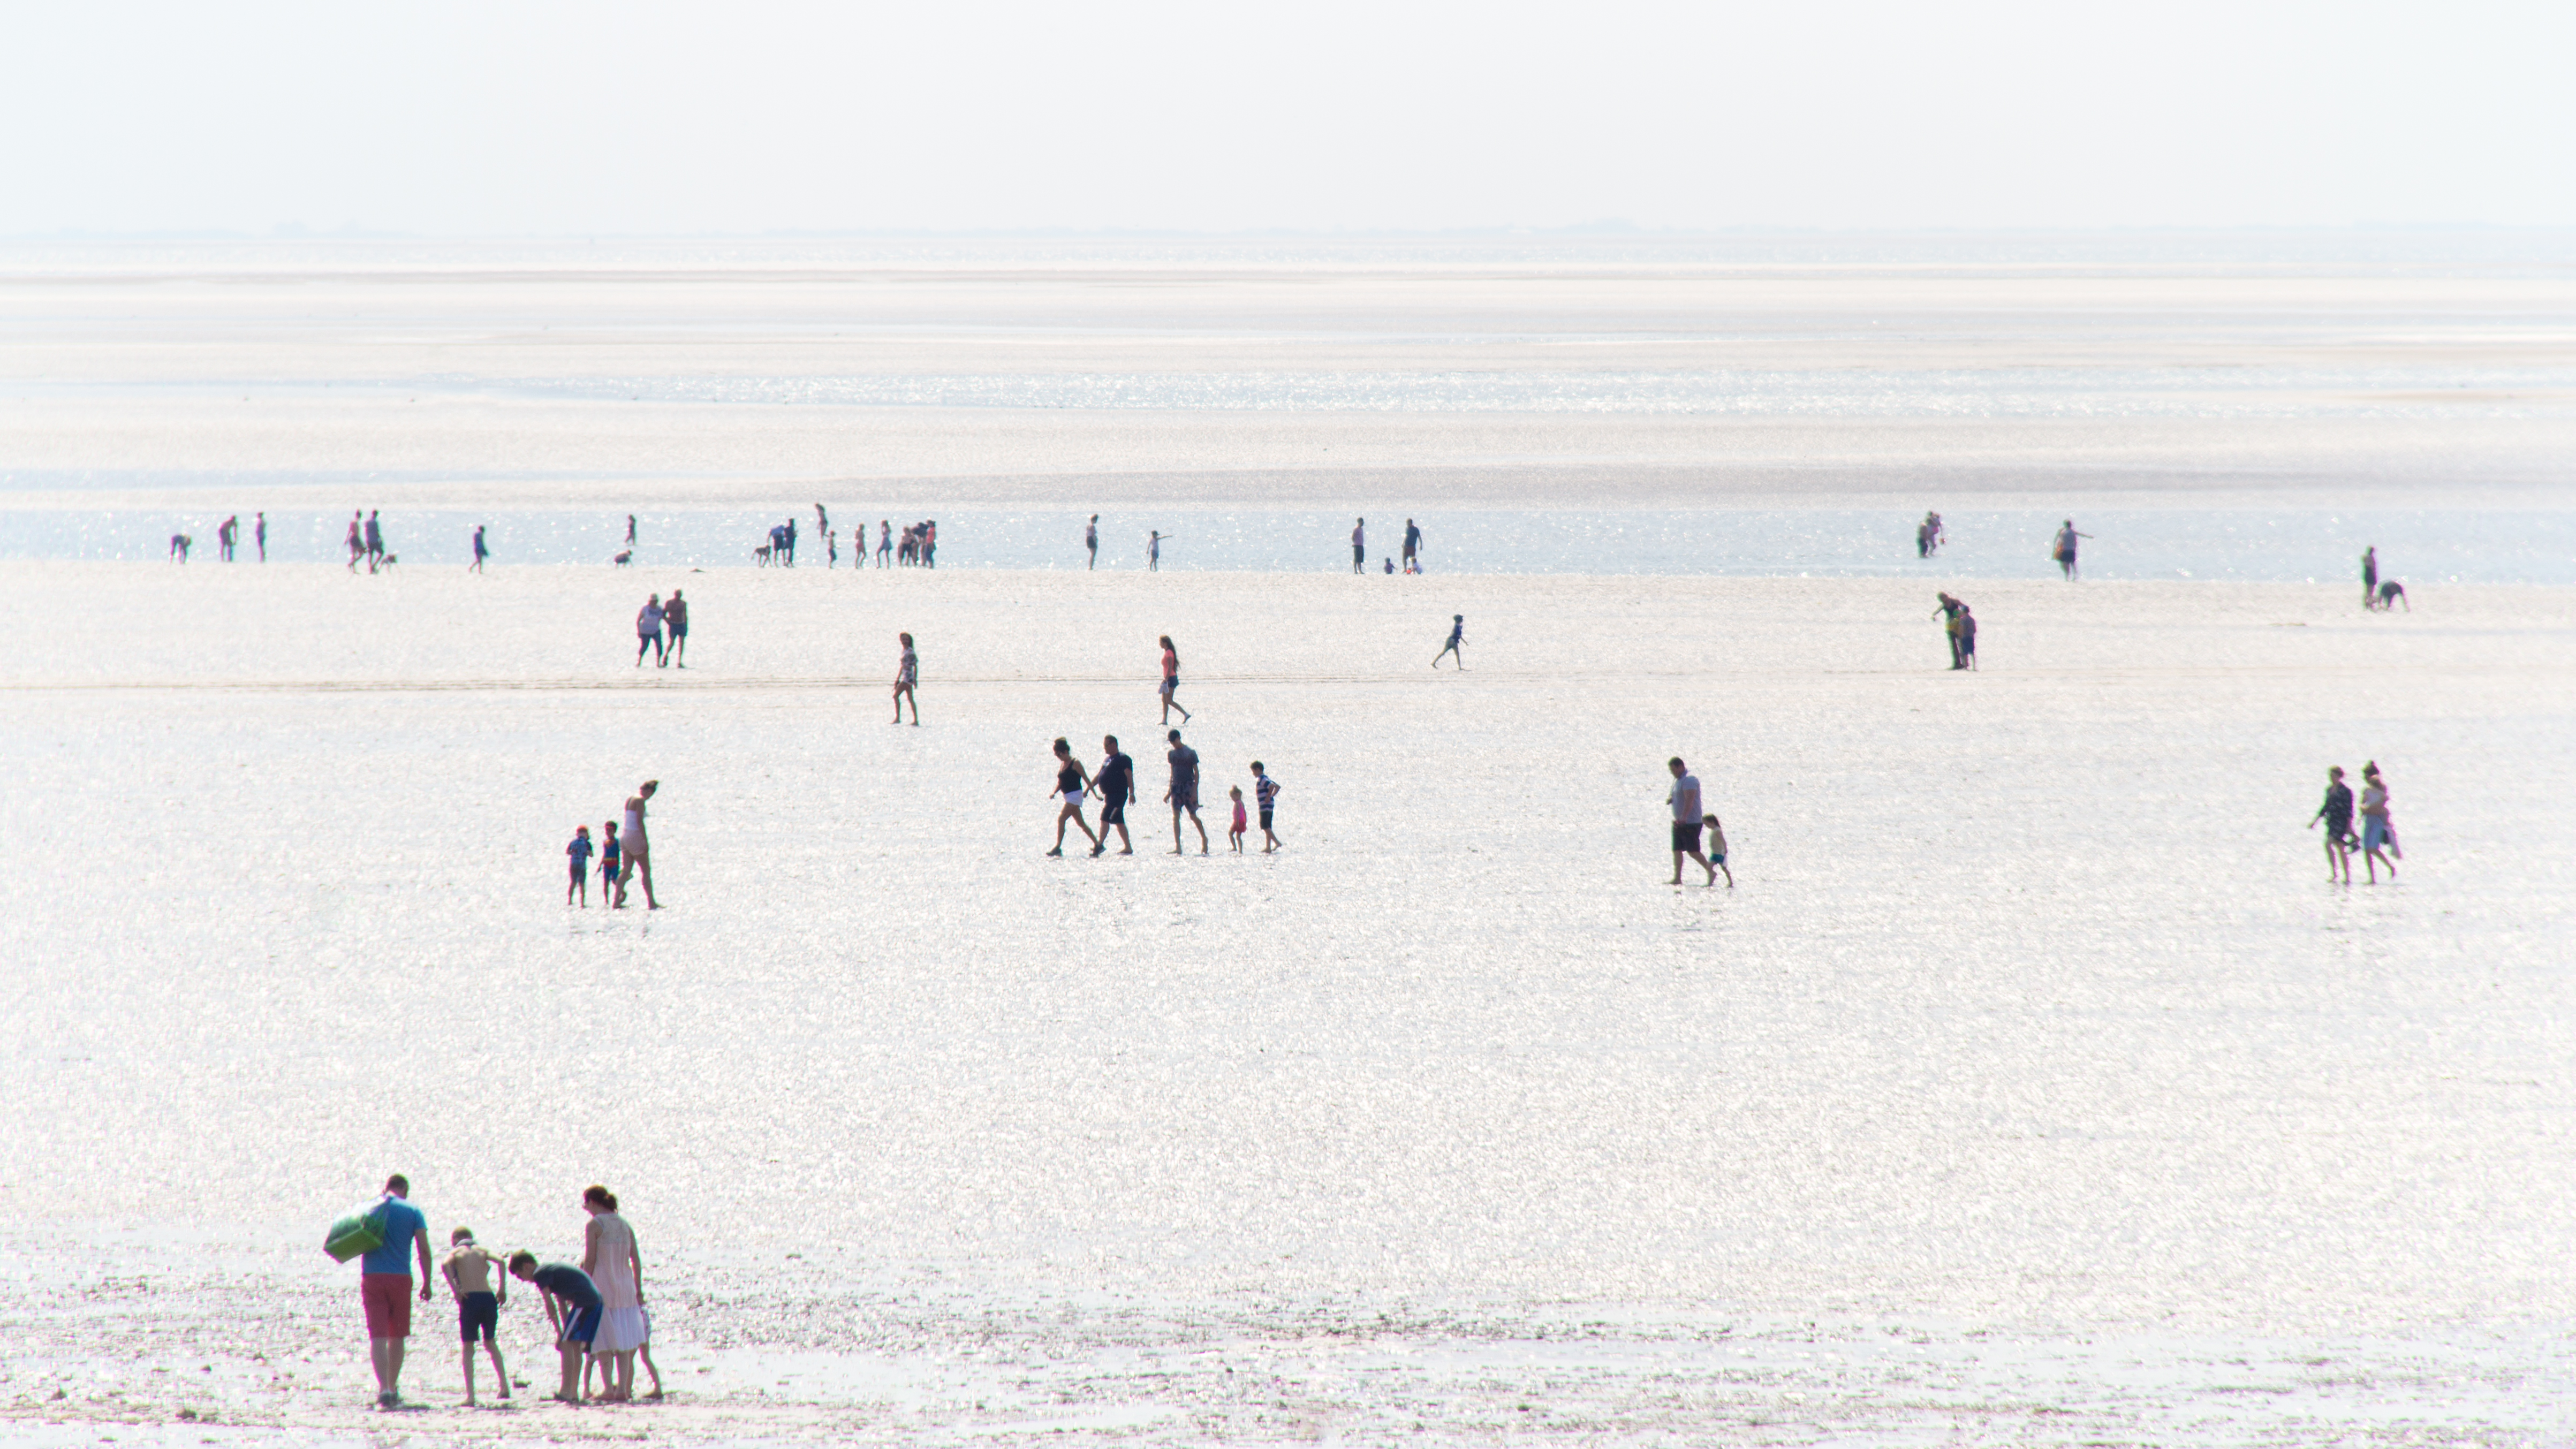 People on the Beach, Activity, Beach, Flow, Human, HQ Photo